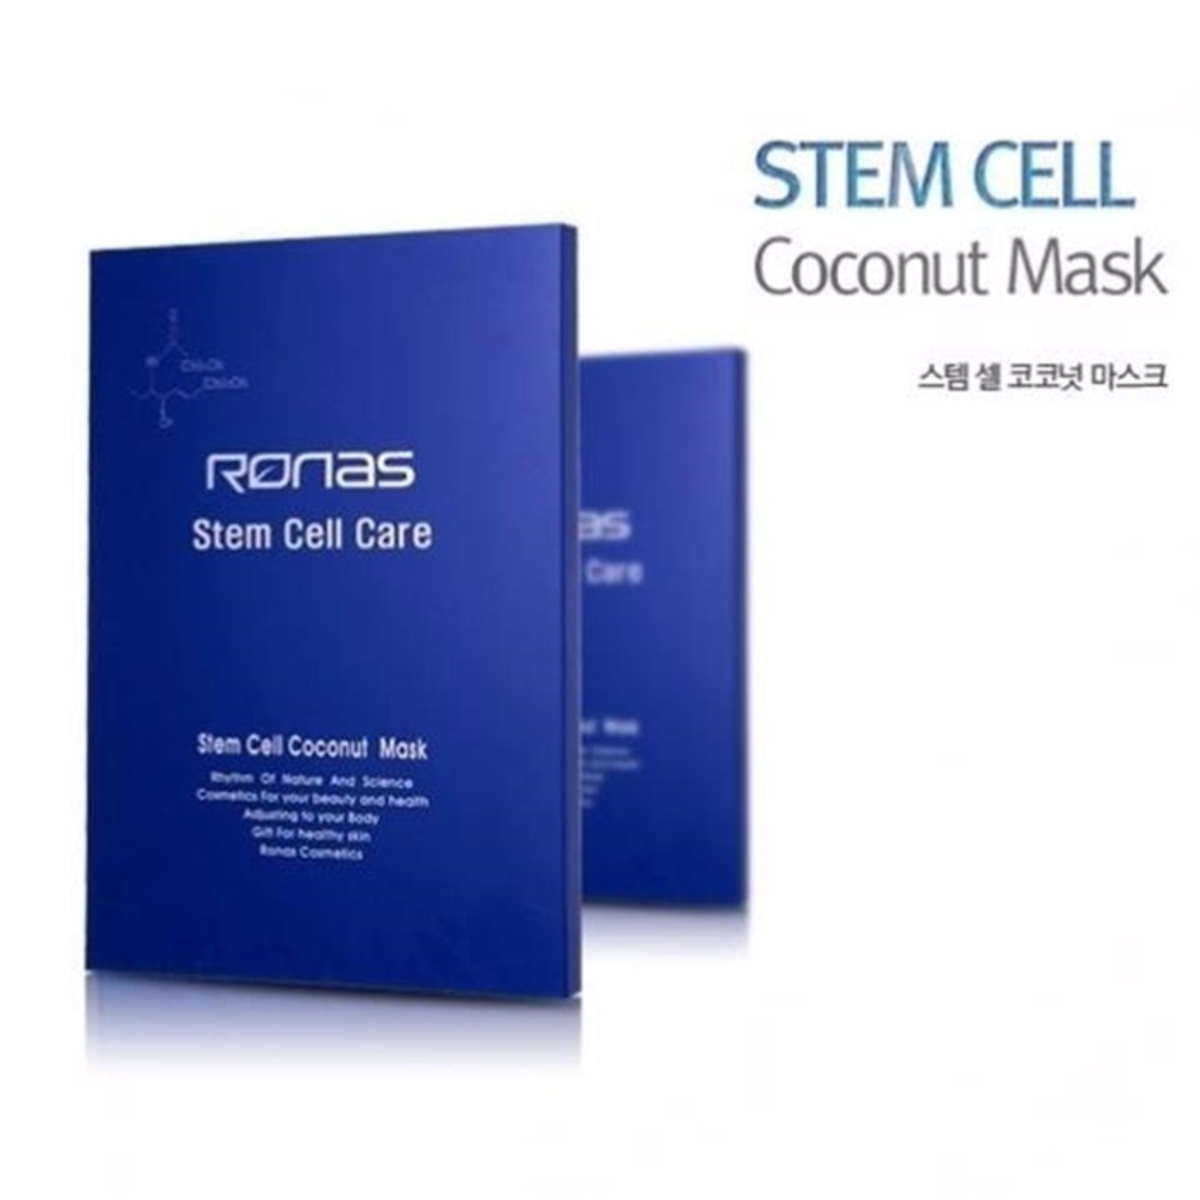 Ronas Stem Cell Care Wrinkle Stell Cell Coconut Mask 5pcs x 2 [Parallel Import Product]